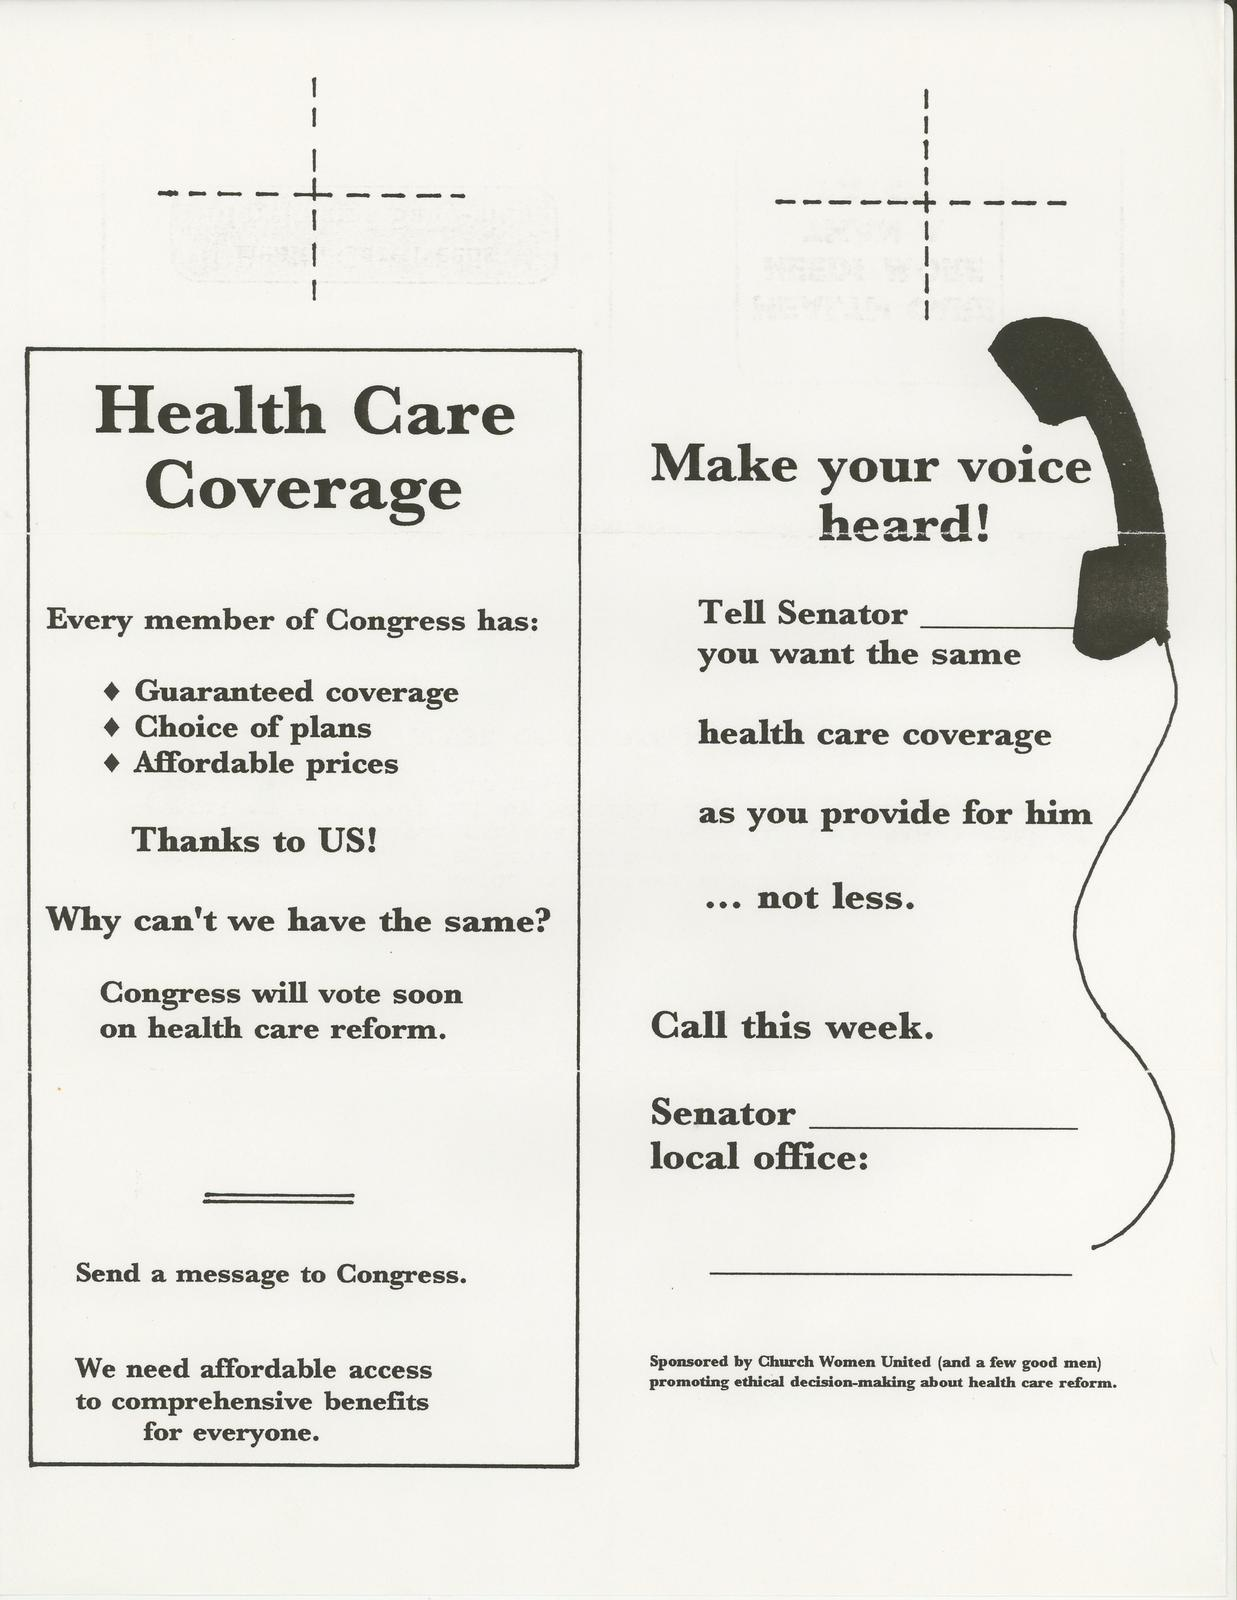 Church Women United- Health Care Coverage Make your voice heard!